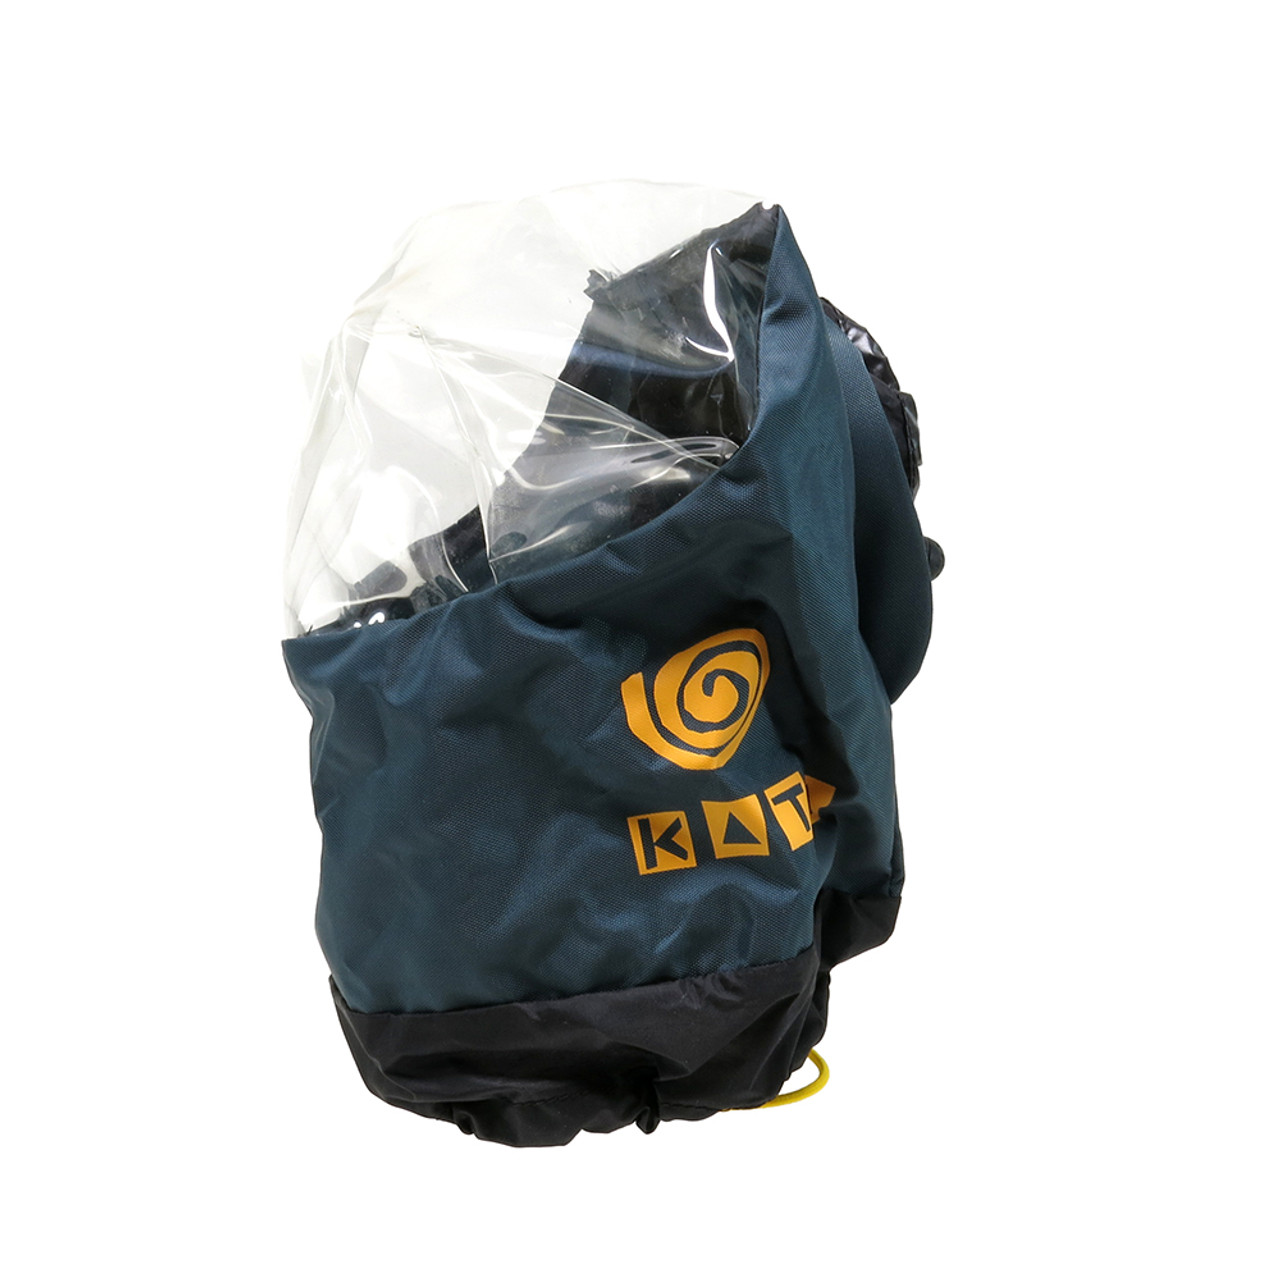 USED KATA RAIN COVER